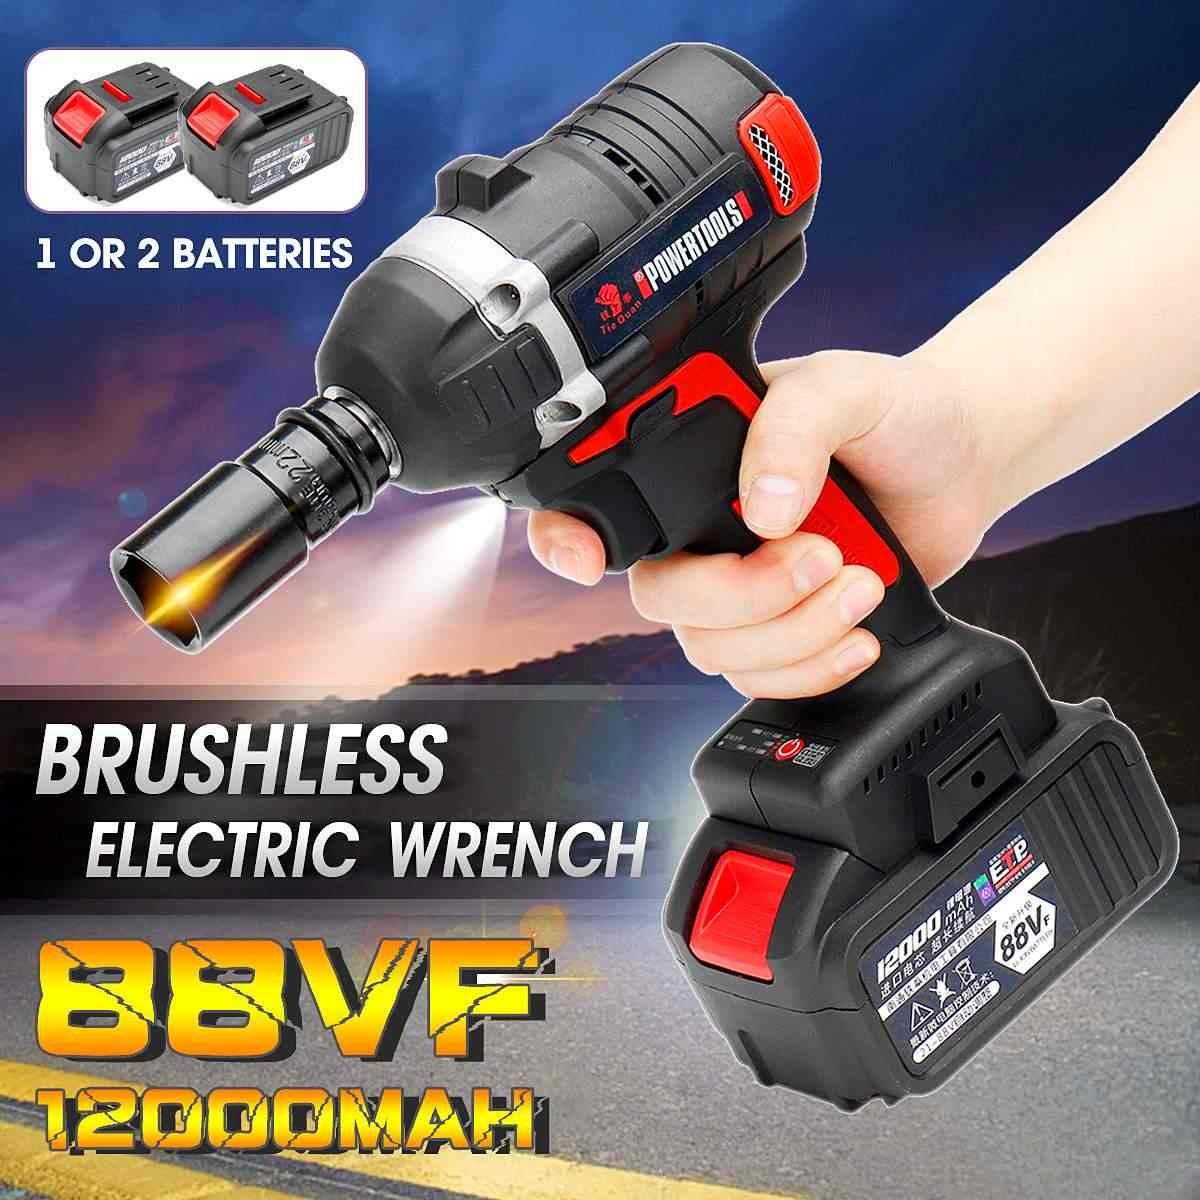 New 88V Rechargeable Brushless/Cordless Electric Wrench 330N.m Torque Household Car Wheel Socket Wrench Hand Drill Power Tools